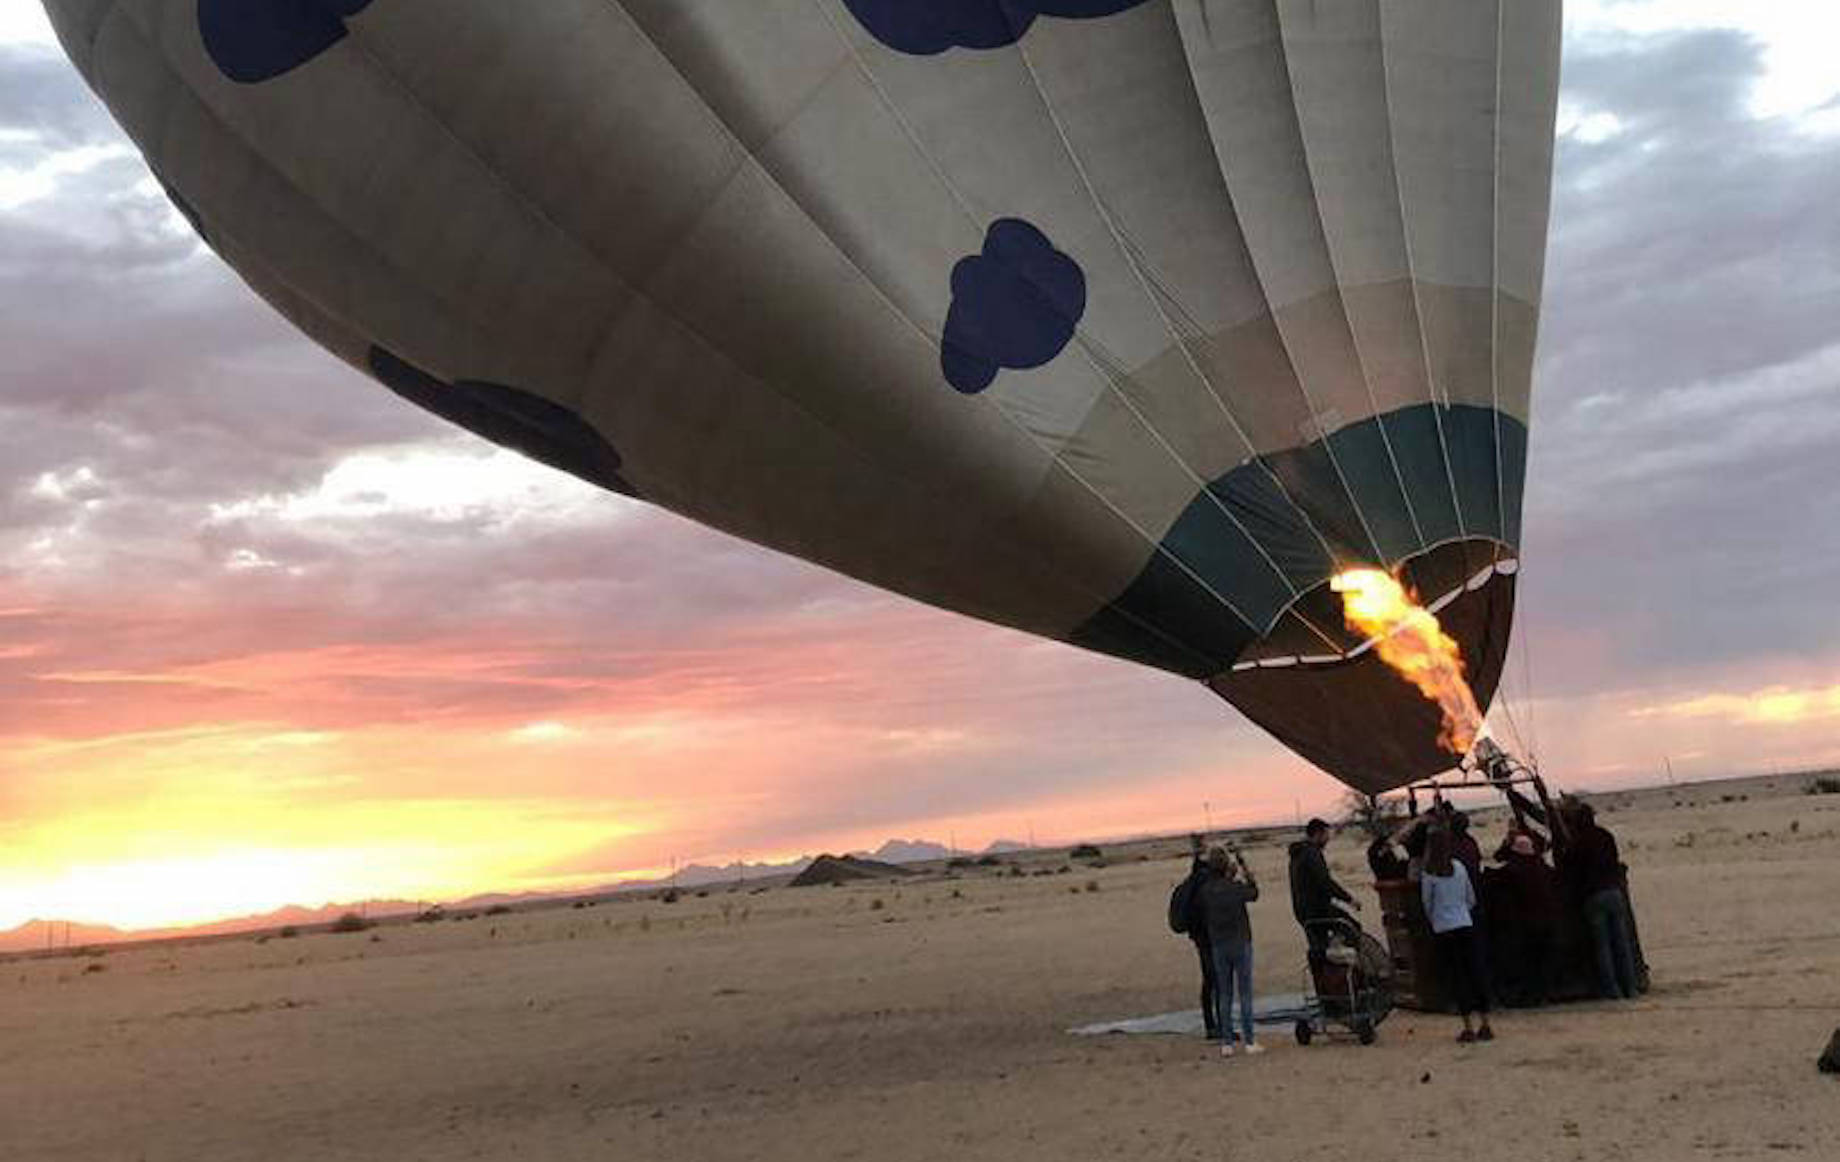 People trying to inflate hot air balloons